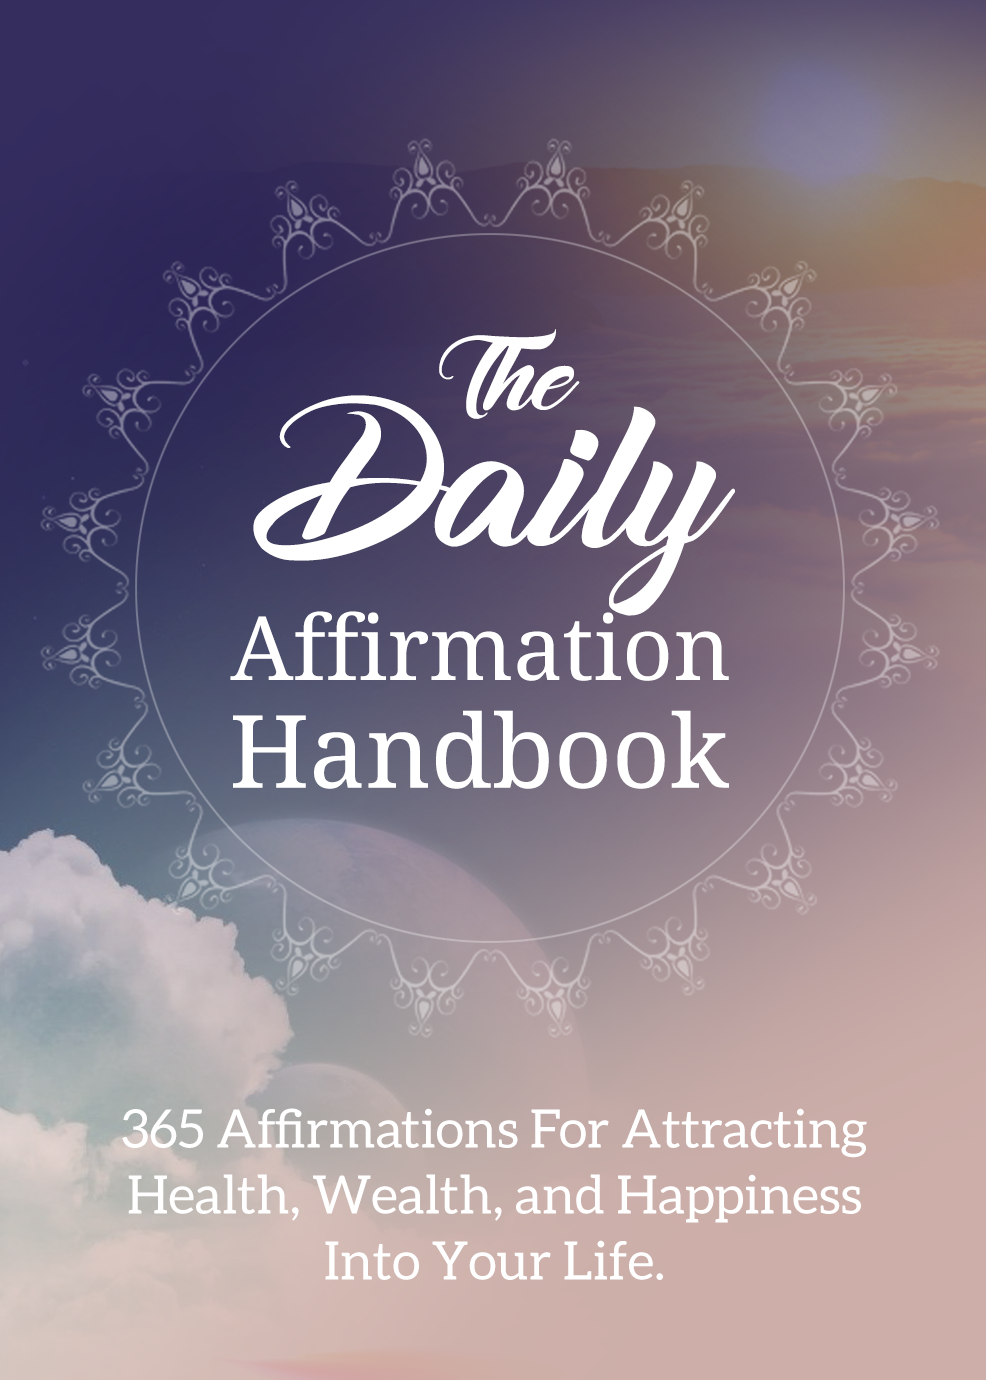 The Daily Affirmation Handbook (365 Affirmations For Attracting Health, Wealth, And Happiness Into Your Life) Ebook's Book Image